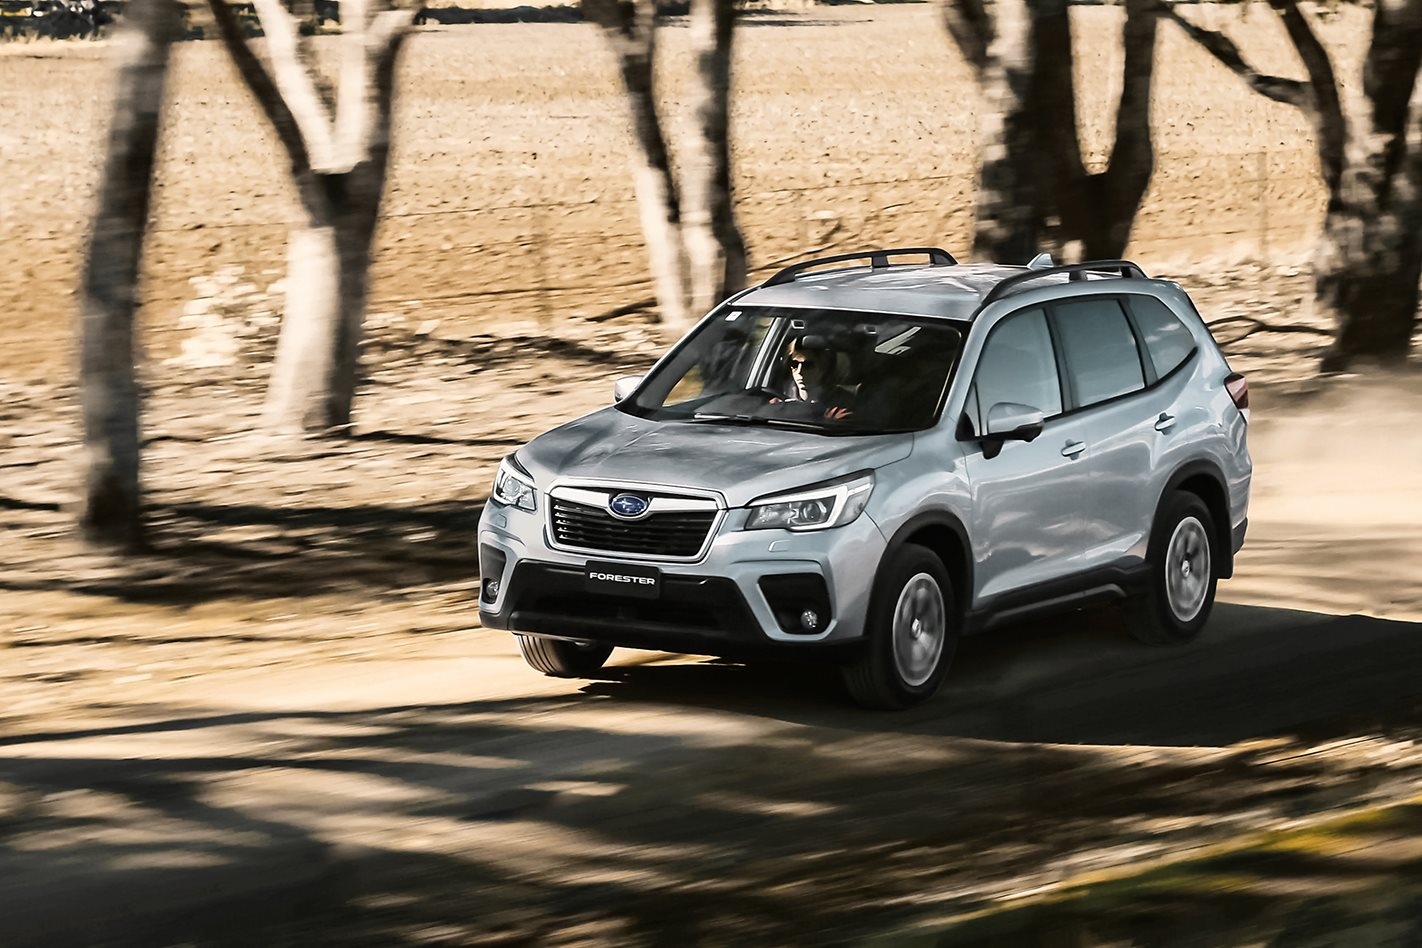 Subaru Forester 2019 Review, Price & Features